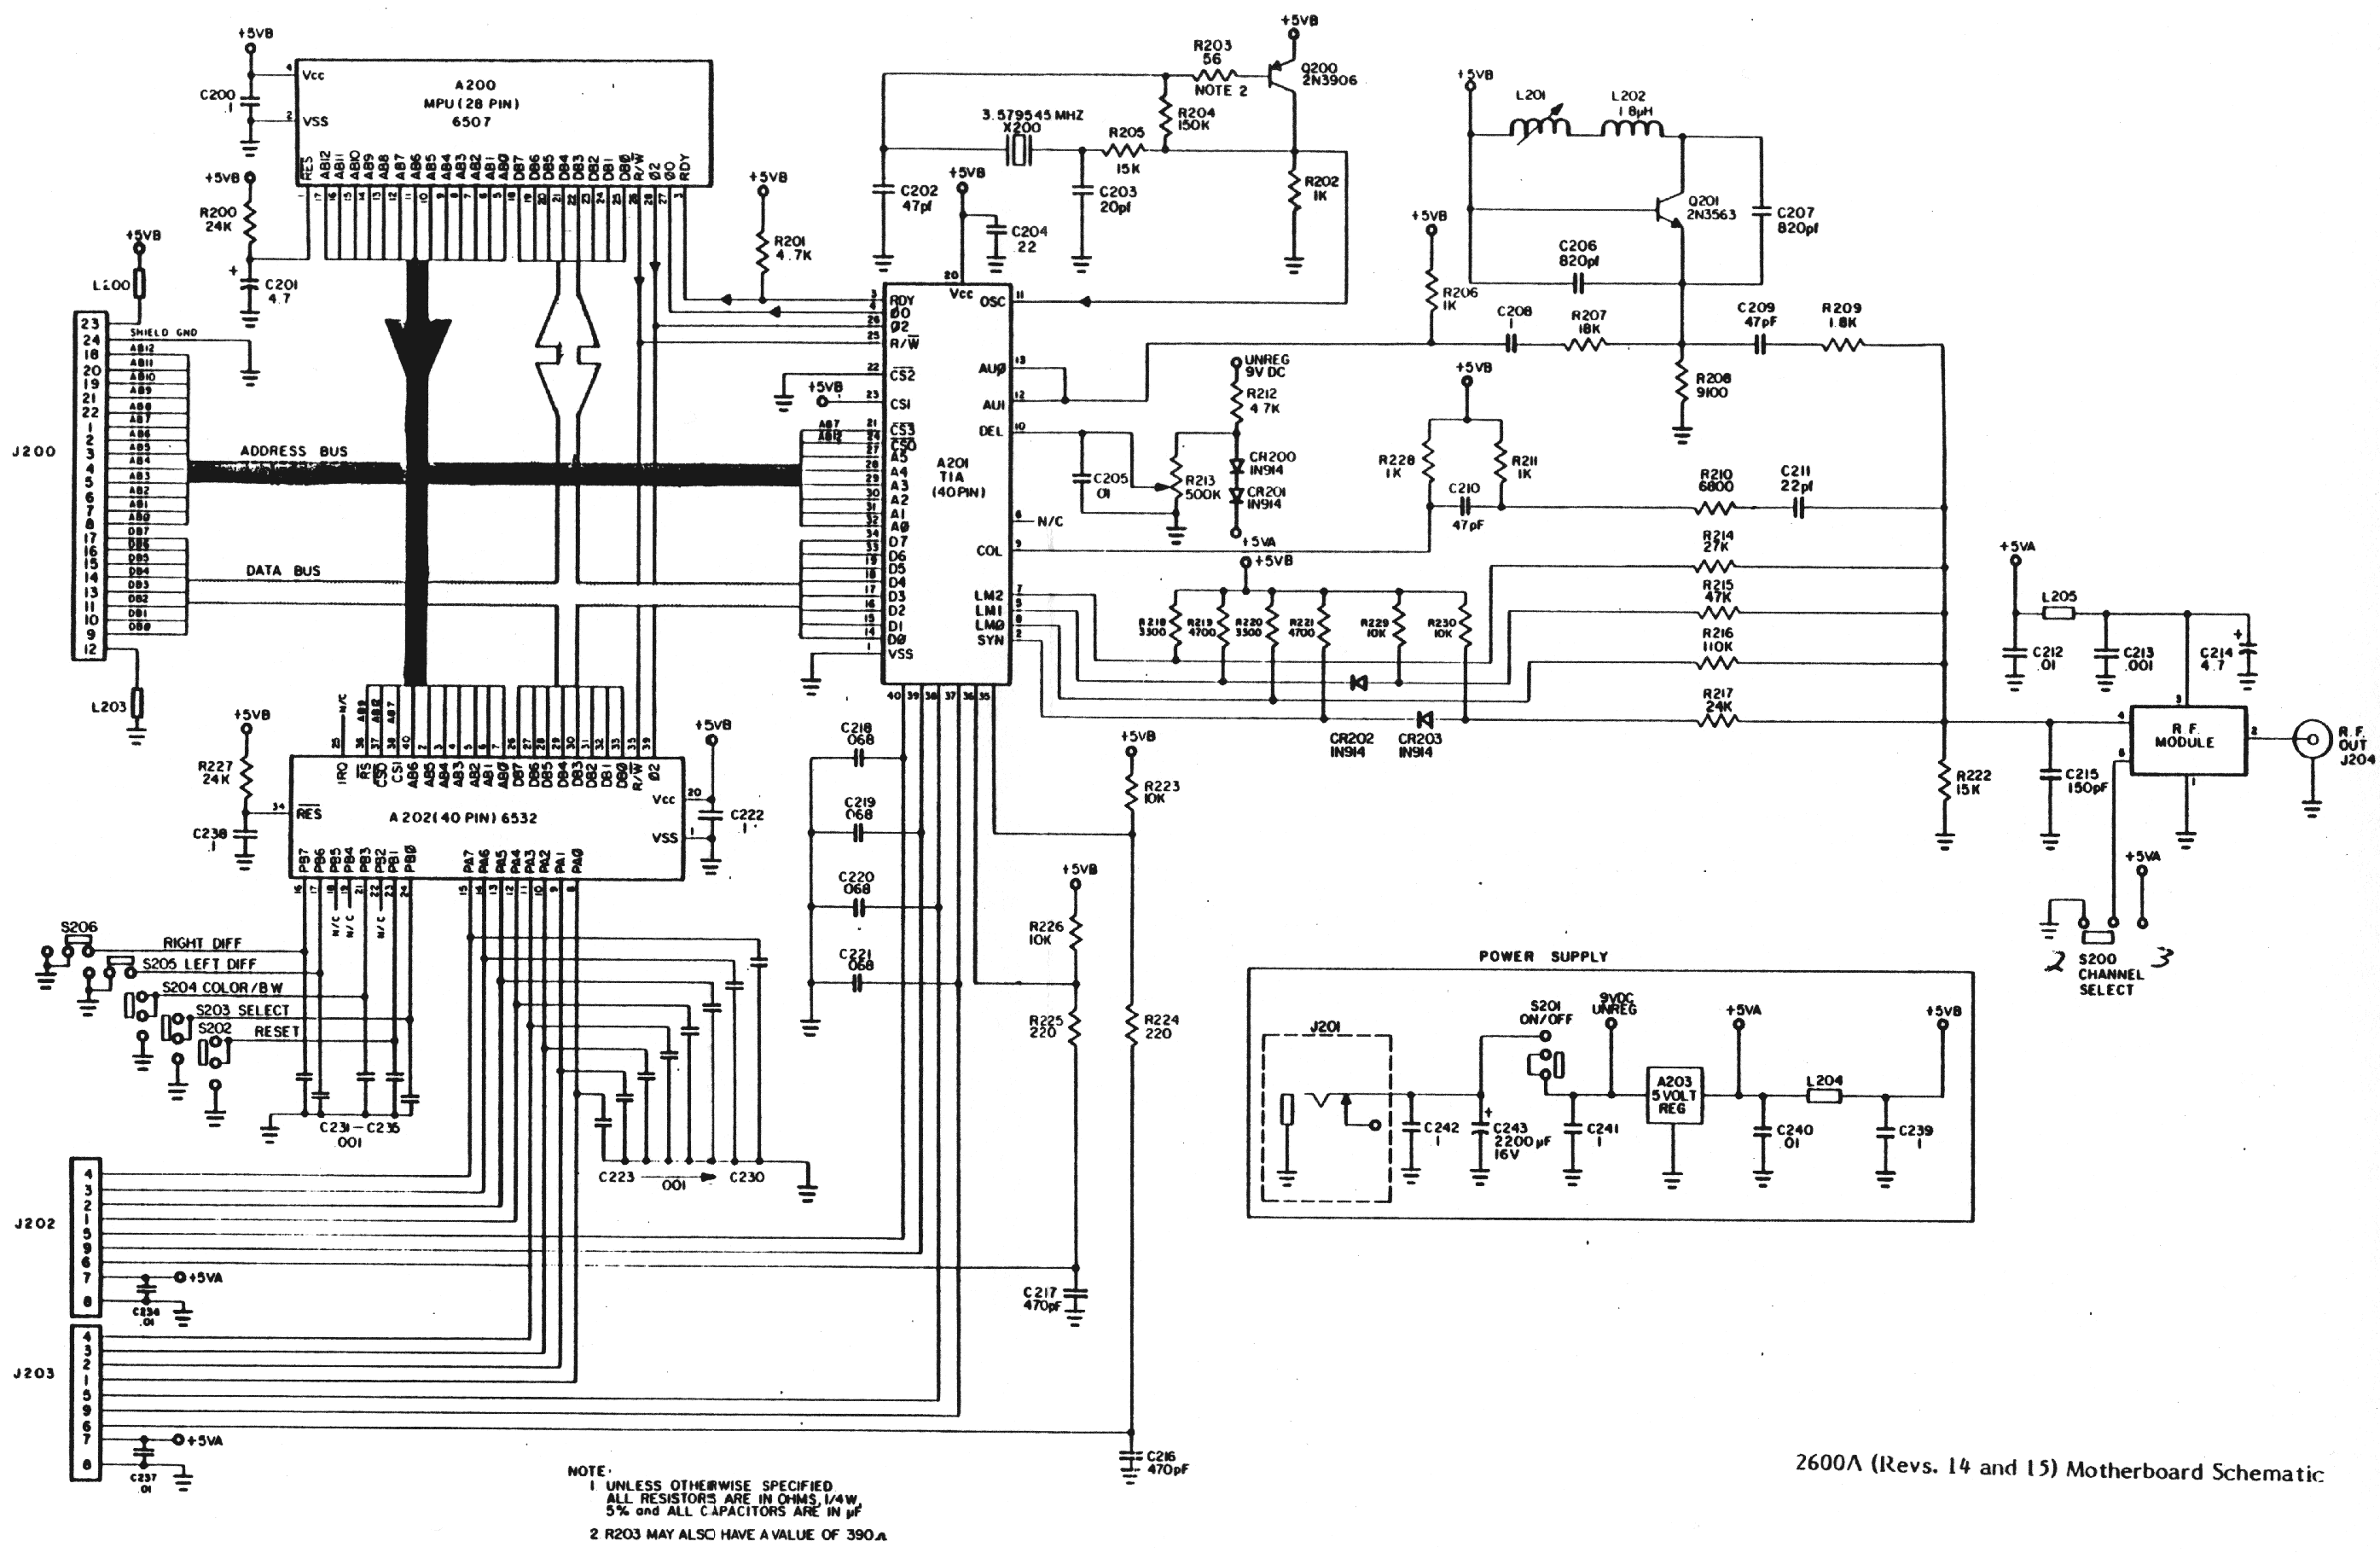 Schematicsconsole Related Schematics Nfg Games Gamesx Free Schematic Diagram Download V 2600a R14 15 Motherboard